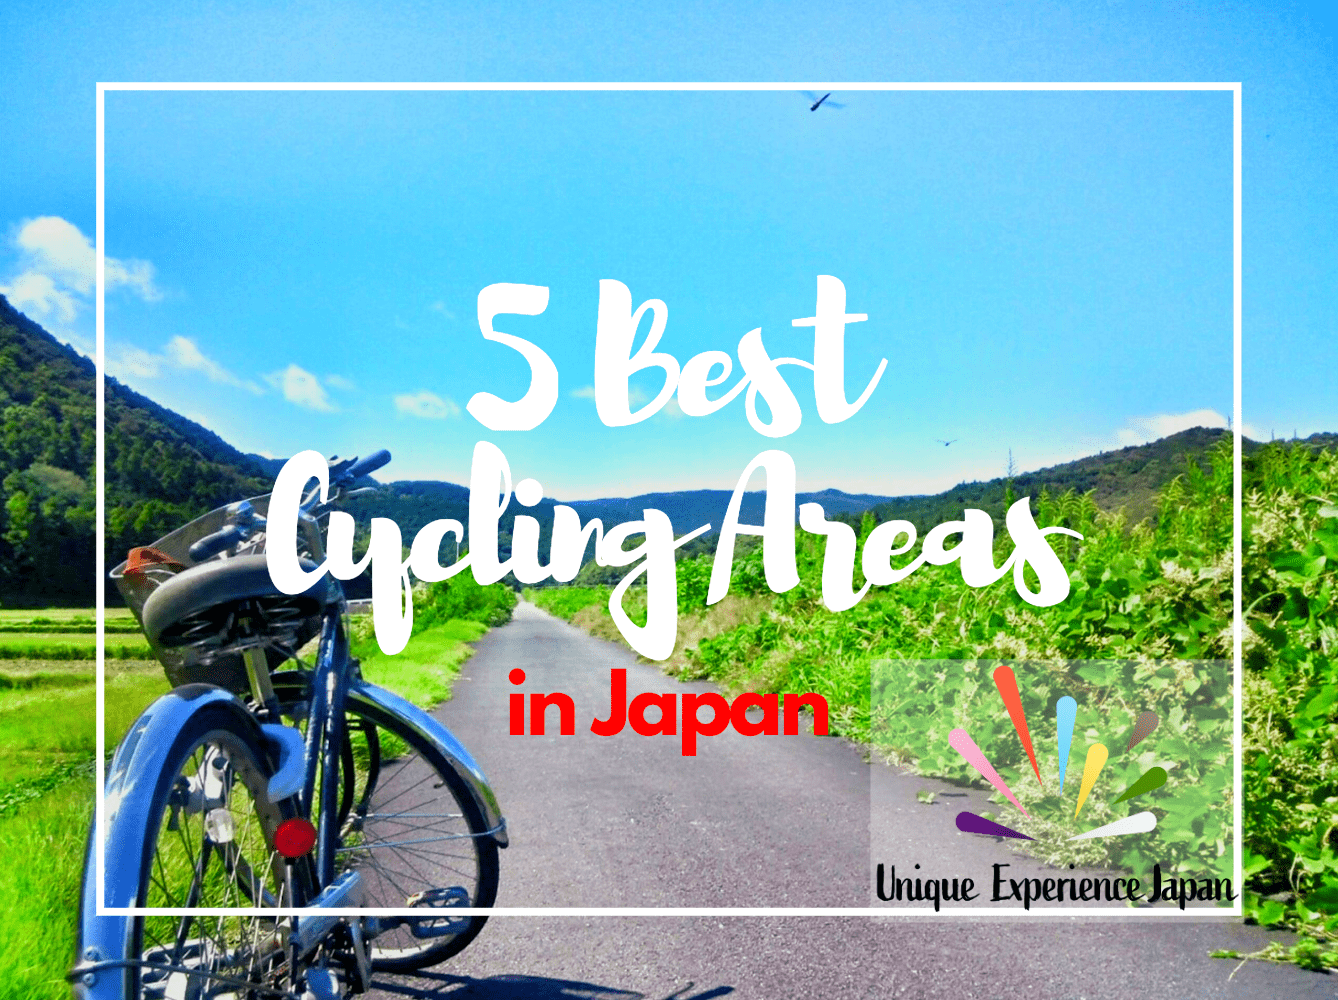 5 Best Areas for Cycling in Japan